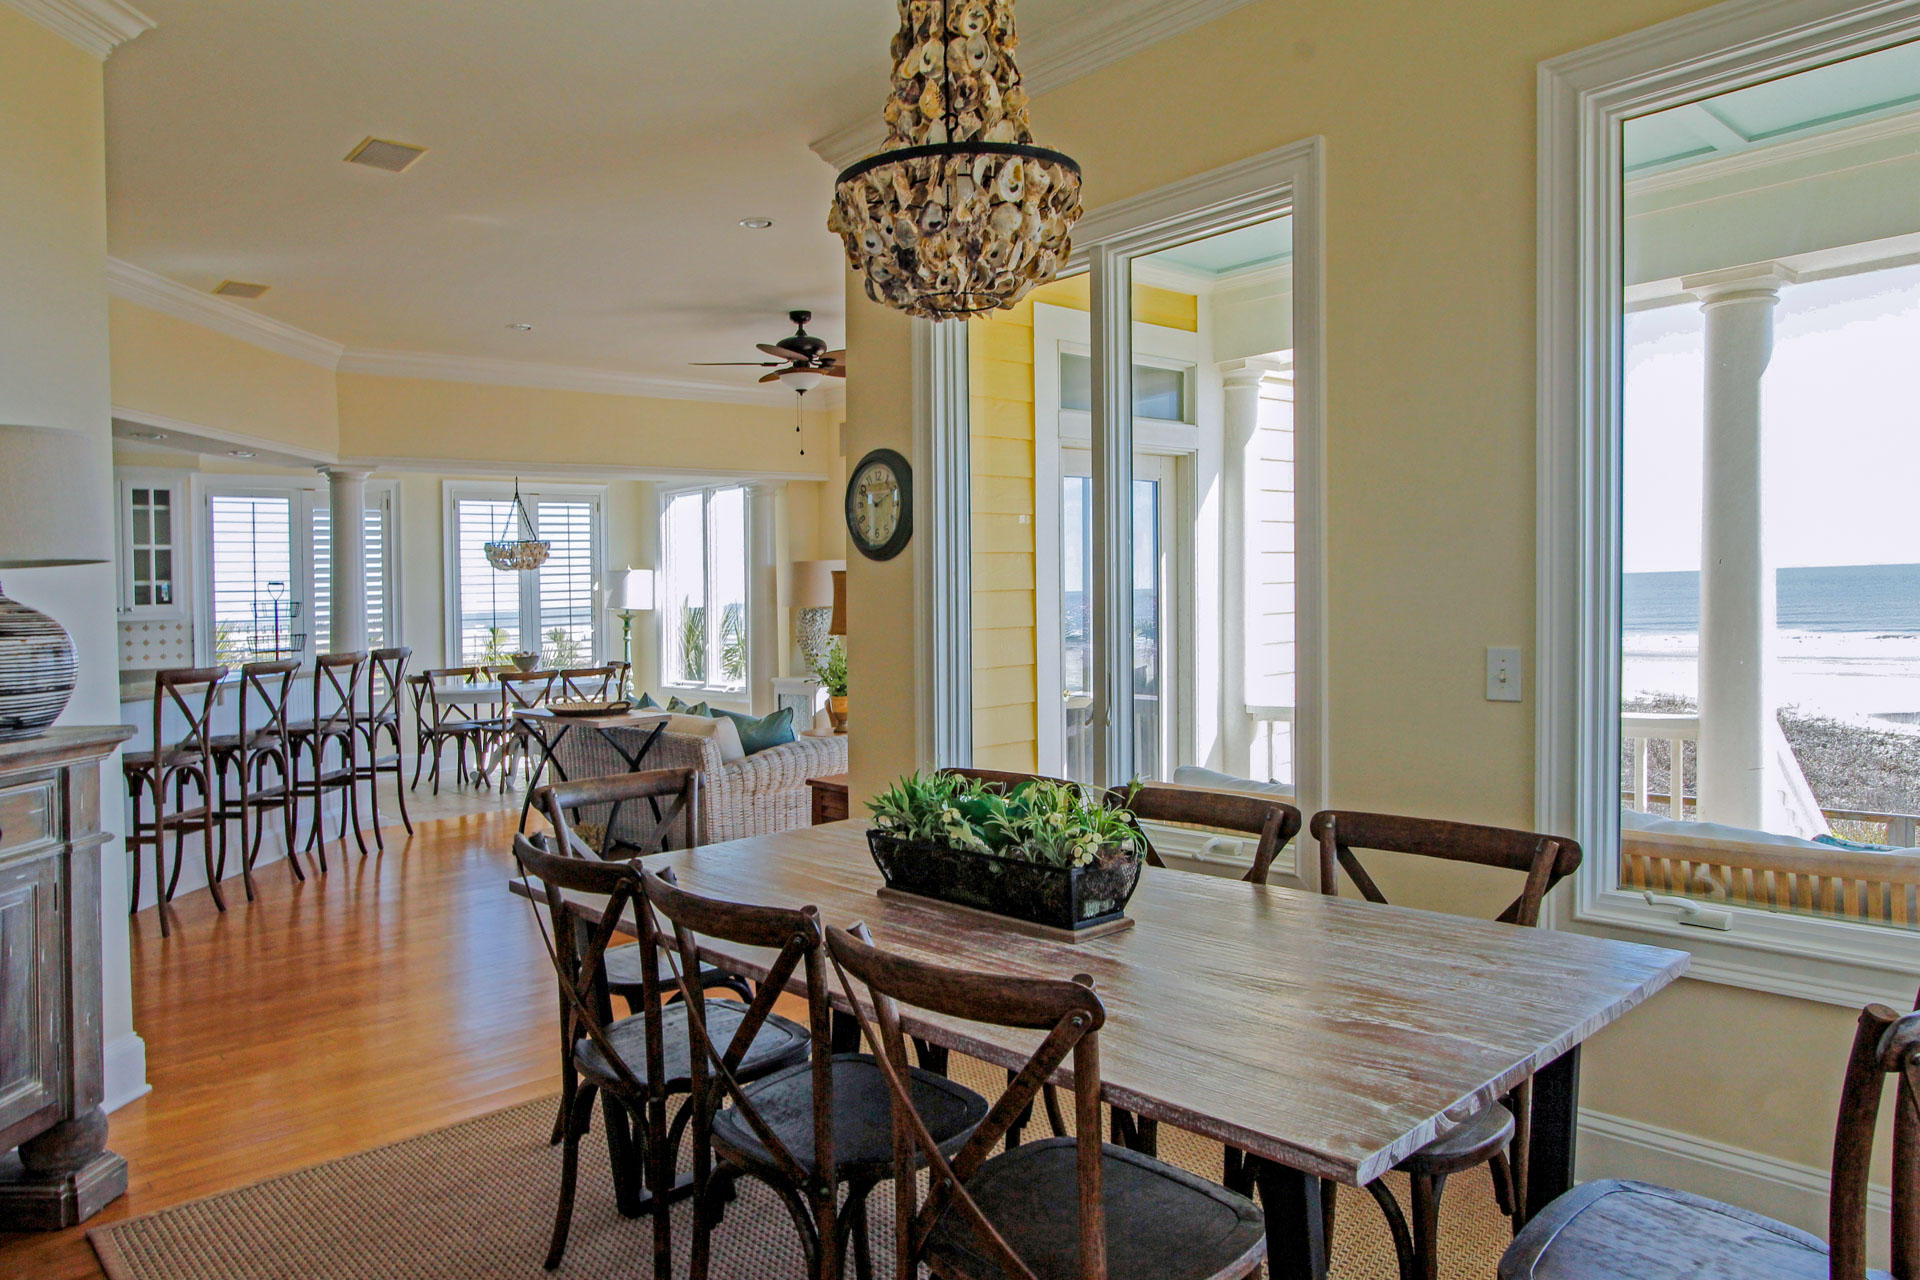 Isle of Palms Homes For Sale - 810 Ocean, Isle of Palms, SC - 22